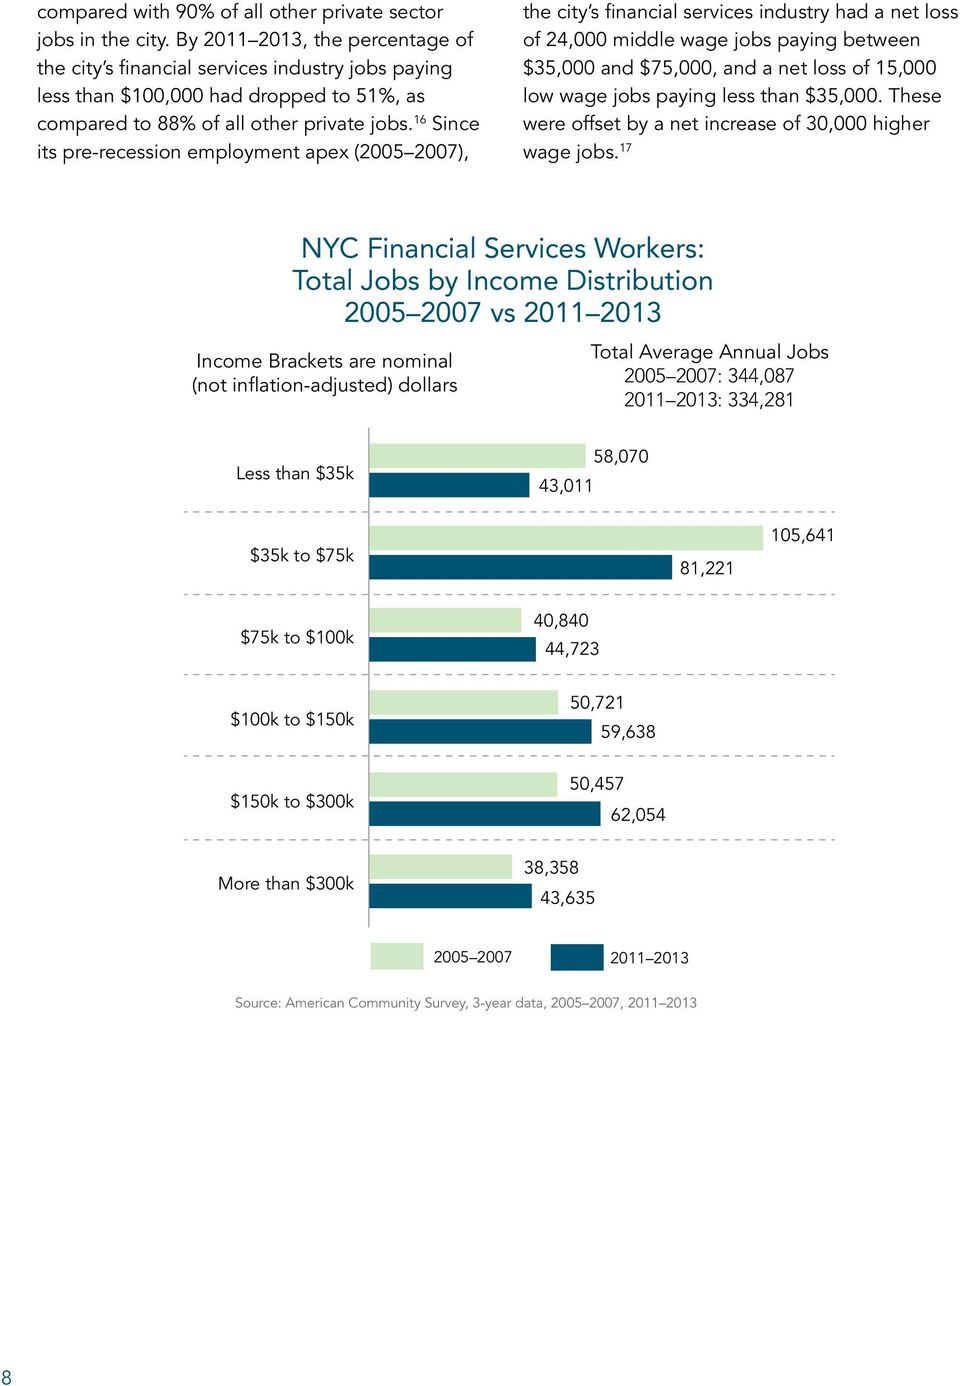 16 Since its pre-recession employment apex (2005 2007), the city s financial services industry had a net loss of 24,000 middle wage jobs paying between $35,000 and $75,000, and a net loss of 15,000